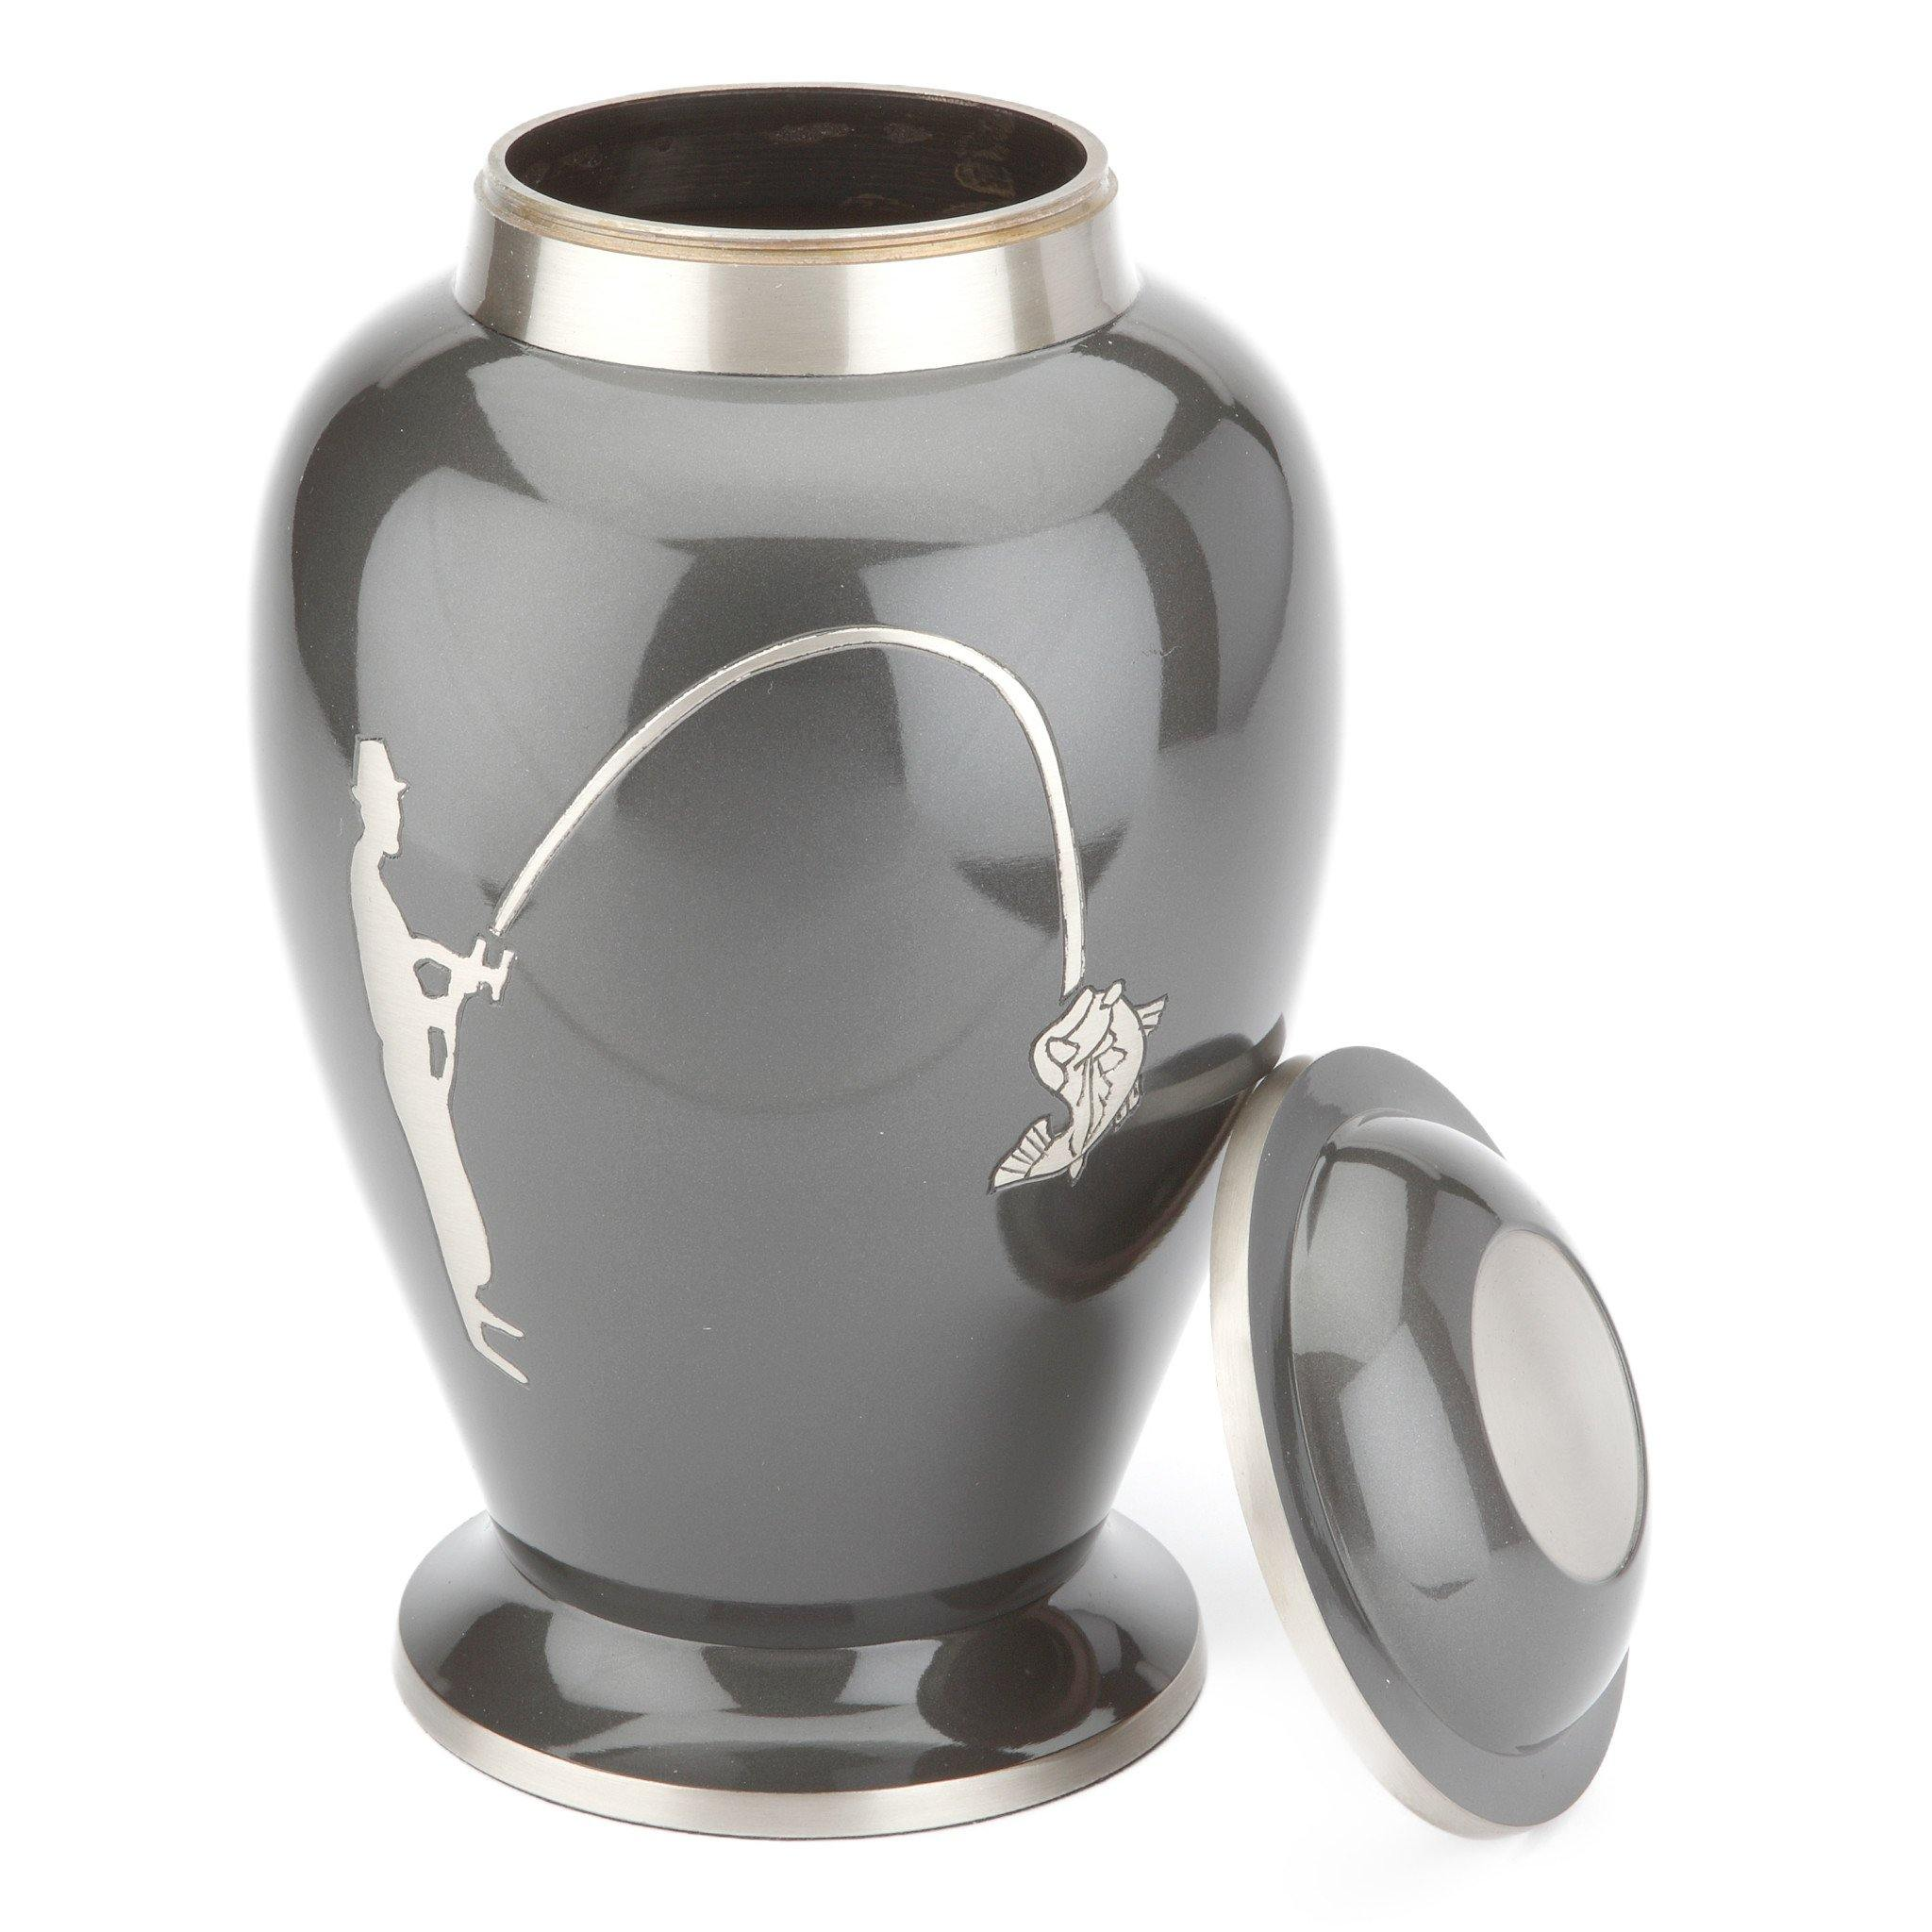 Hobby Fishing Grey Cremation Ashes Urn Adult - Urns UK